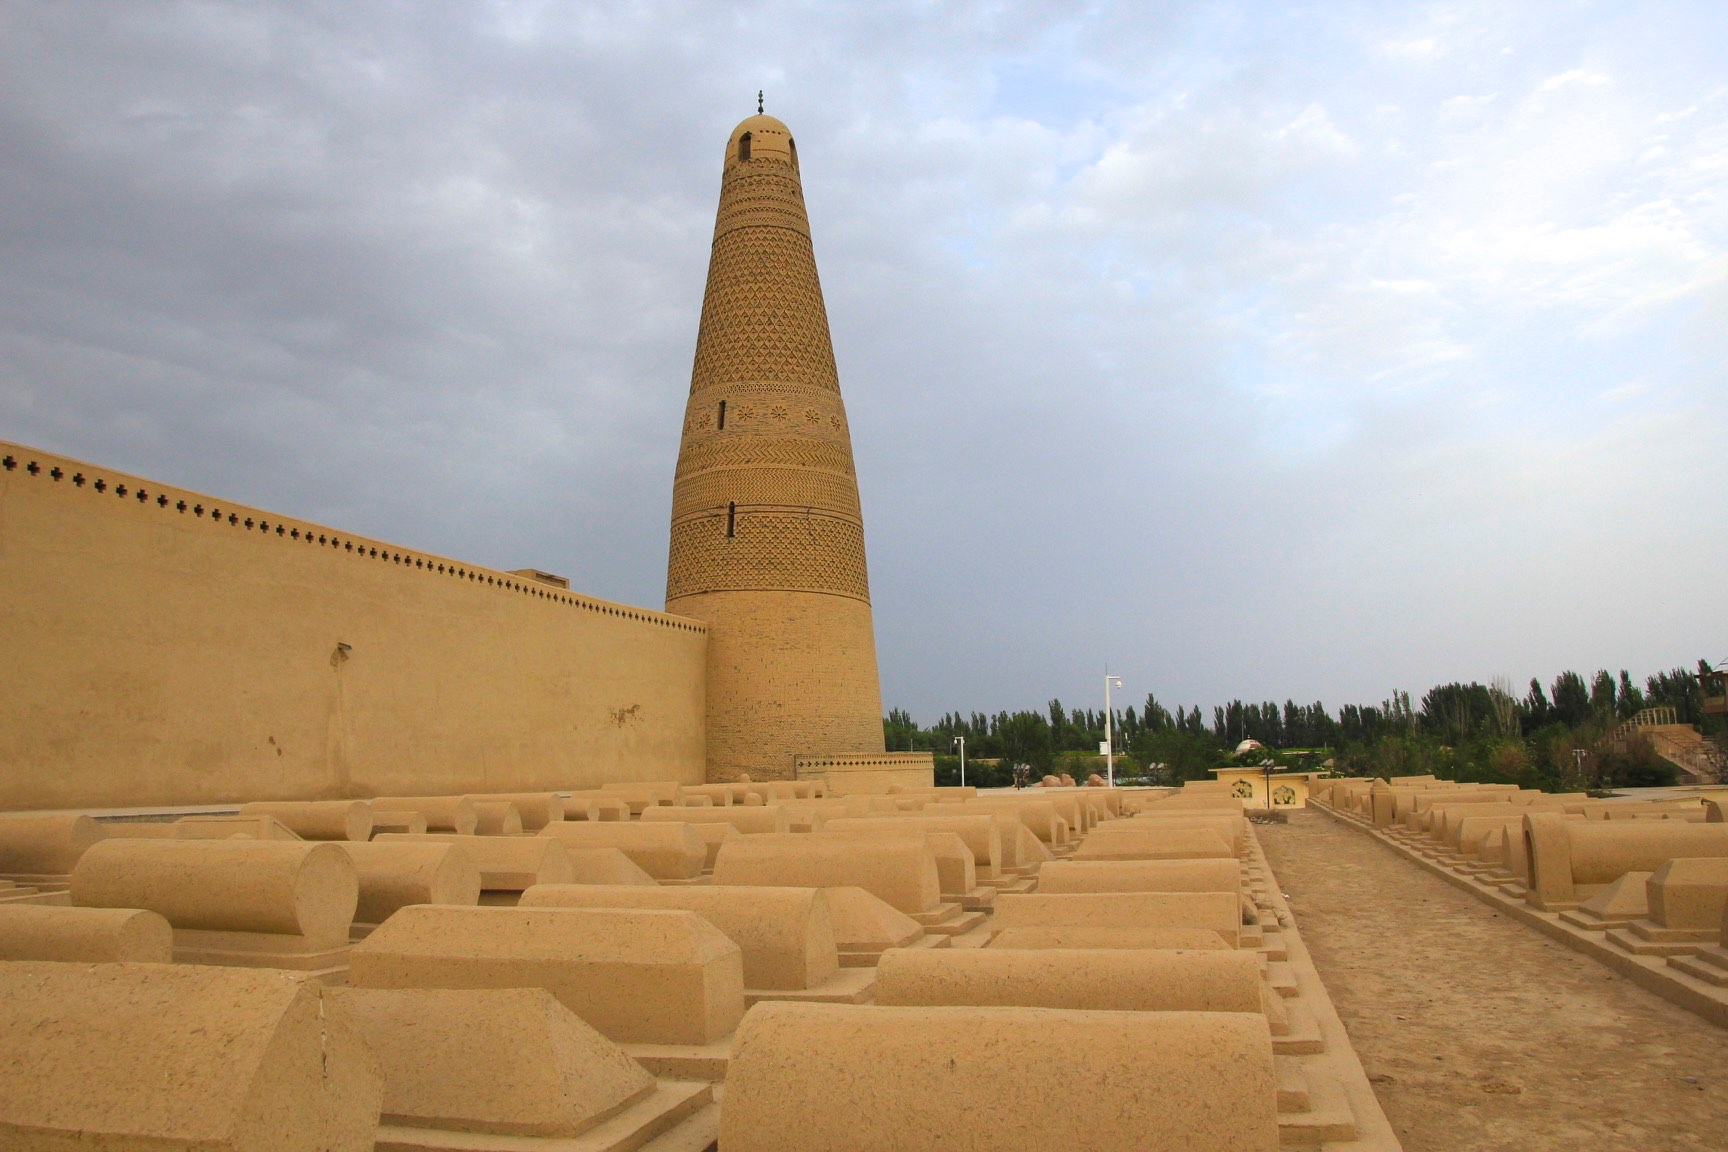 The Emin Minaret or Emin Tower stands by the Uyghur mosque located in Turpan, Xingjiang, China. At 44 meters (144 ft) it is the tallest miaret in China